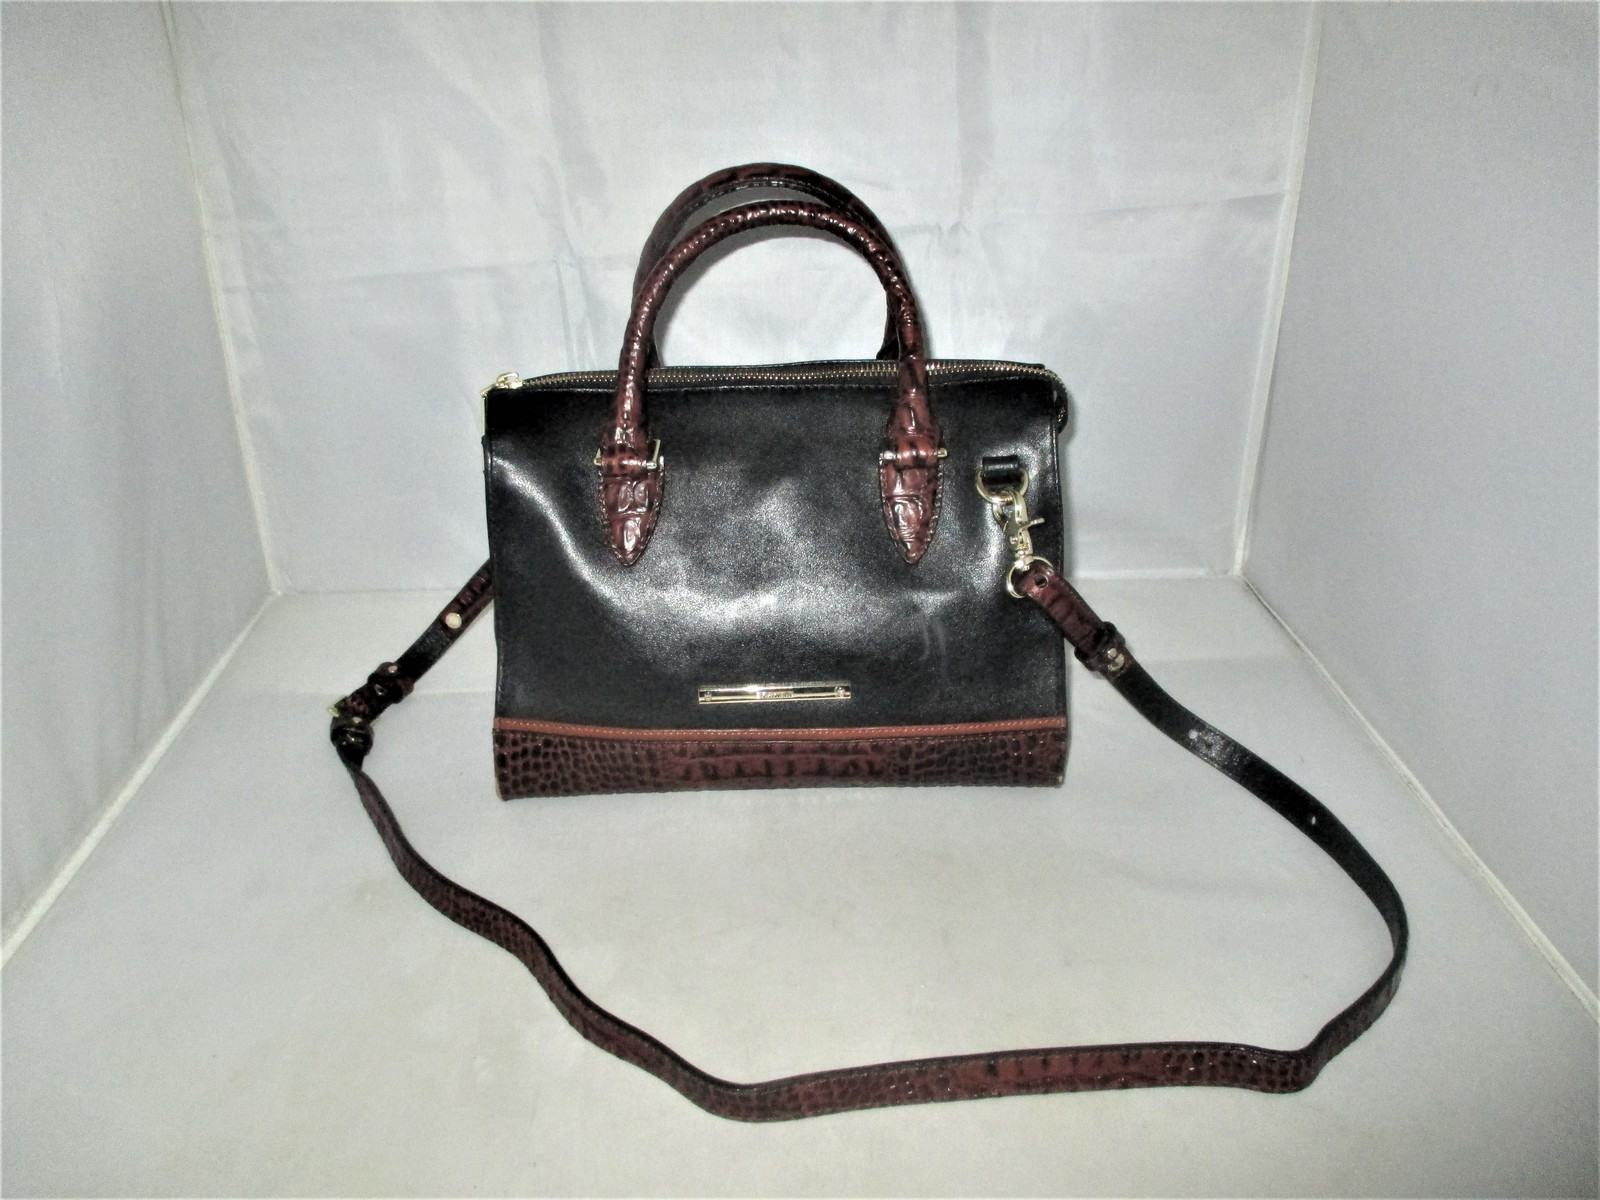 Brahmin Tuscan Tri-Texture Anywhere Convertible Satchel, Shoulder Bag,Tote $255 image 1